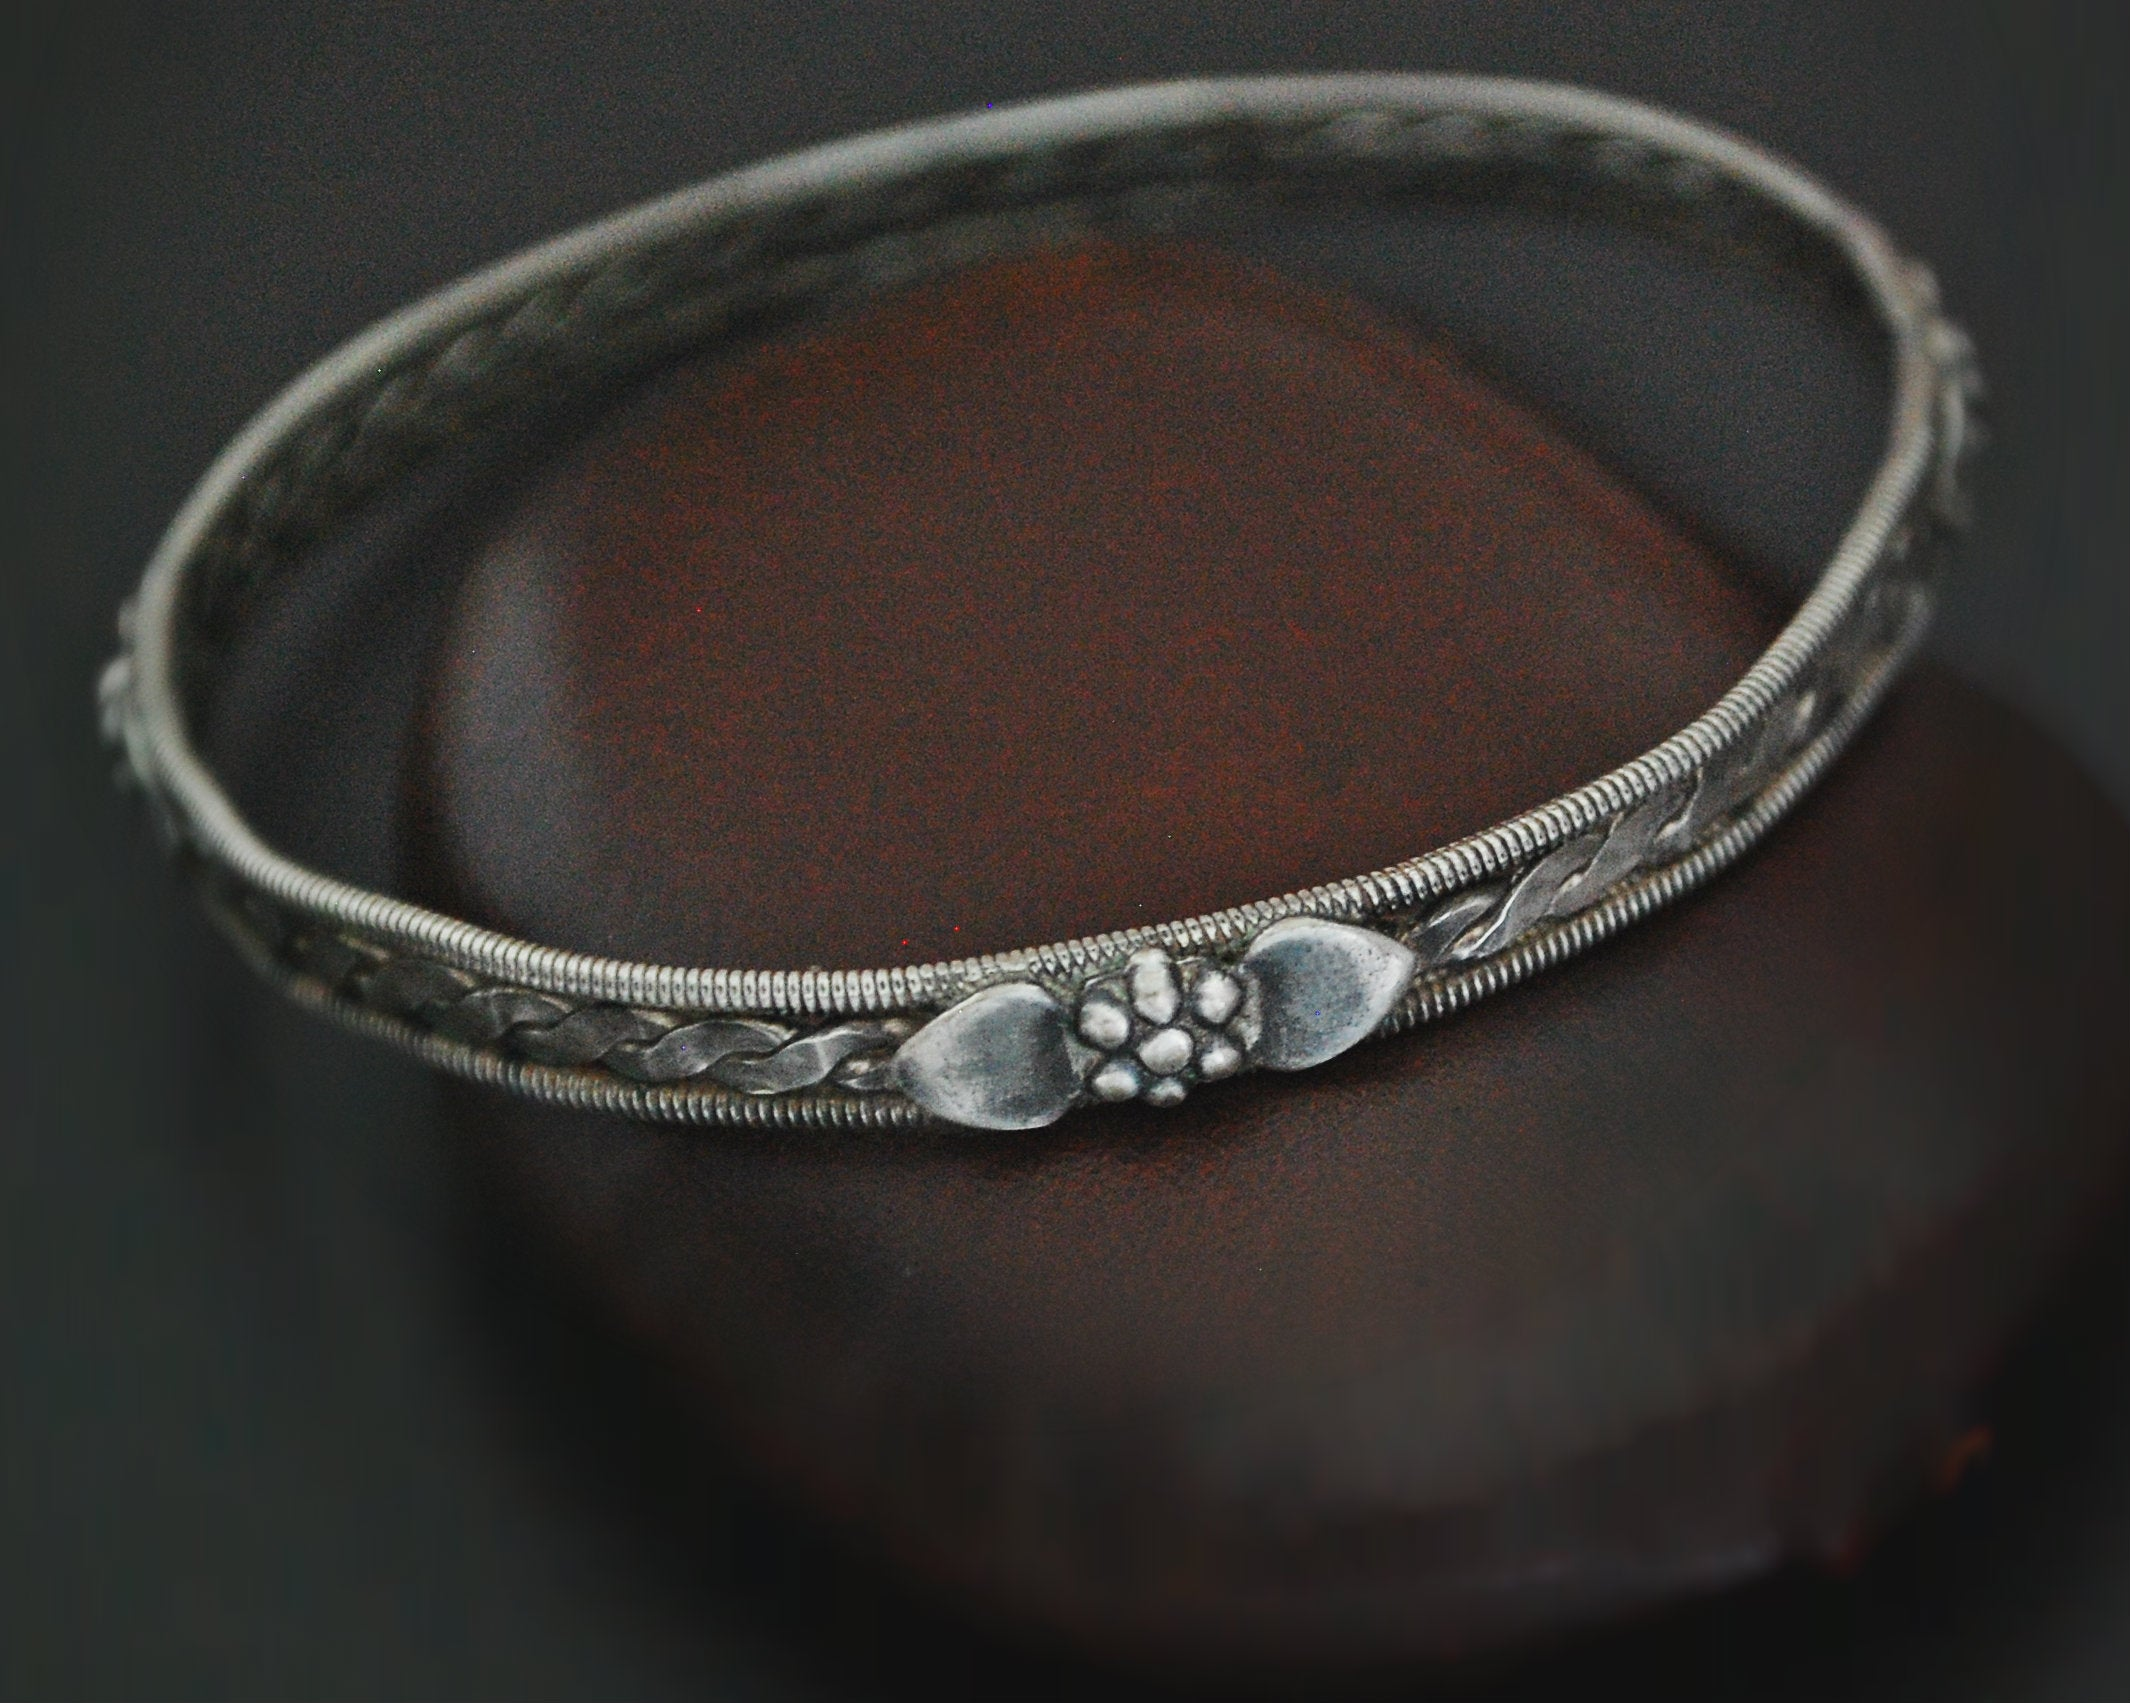 Rajasthani Silver Bangle Bracelet with Flowers - SMALL/MEDIUM